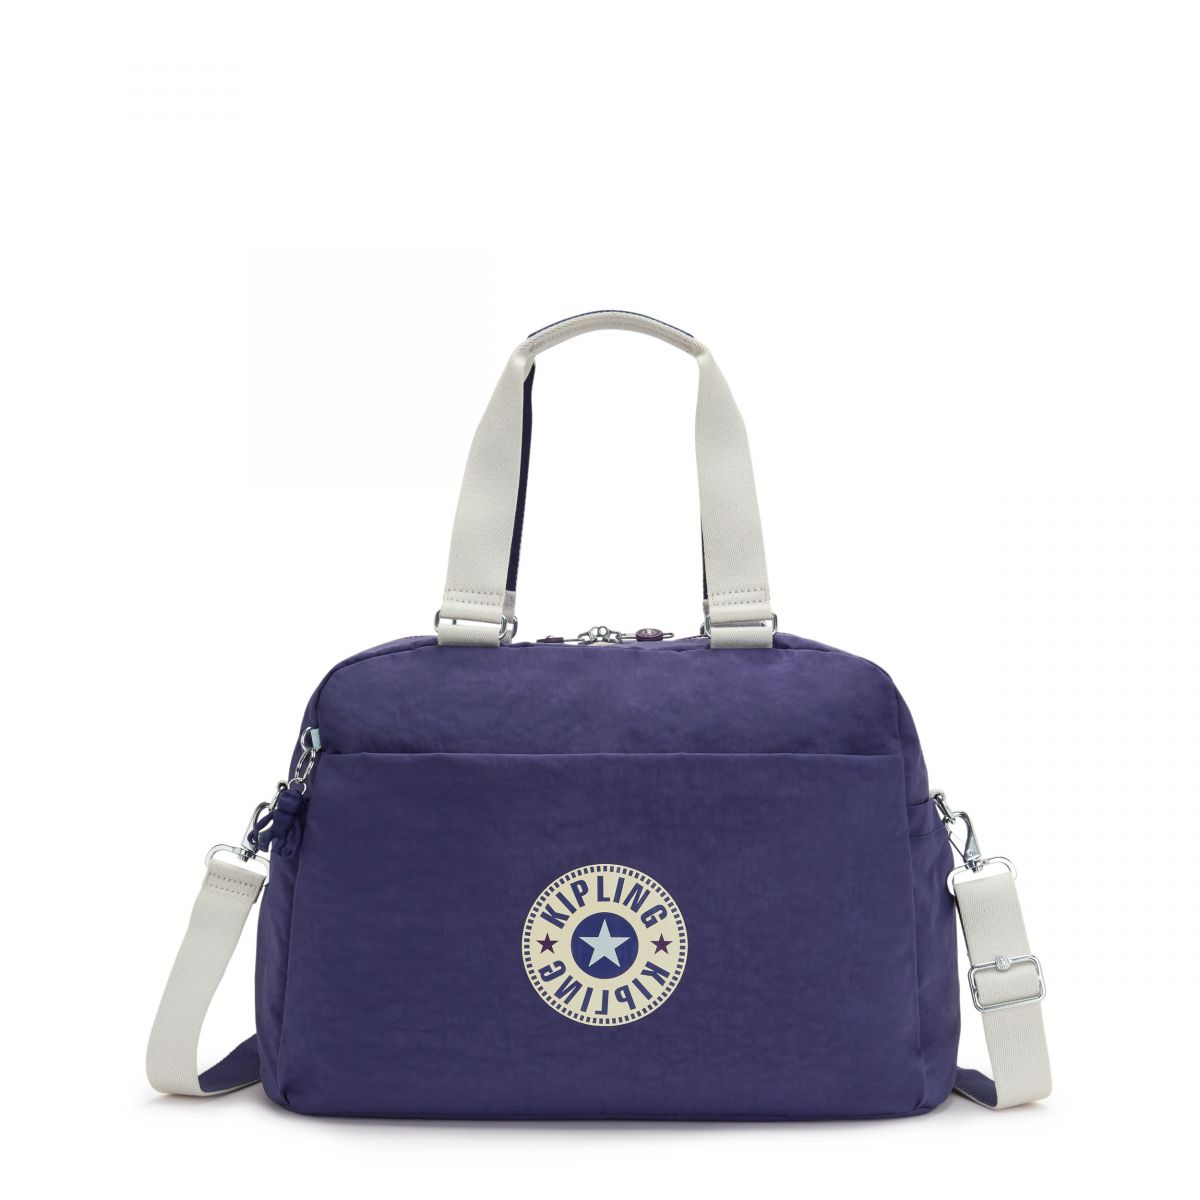 DENY LUGGAGE by Kipling - Front view